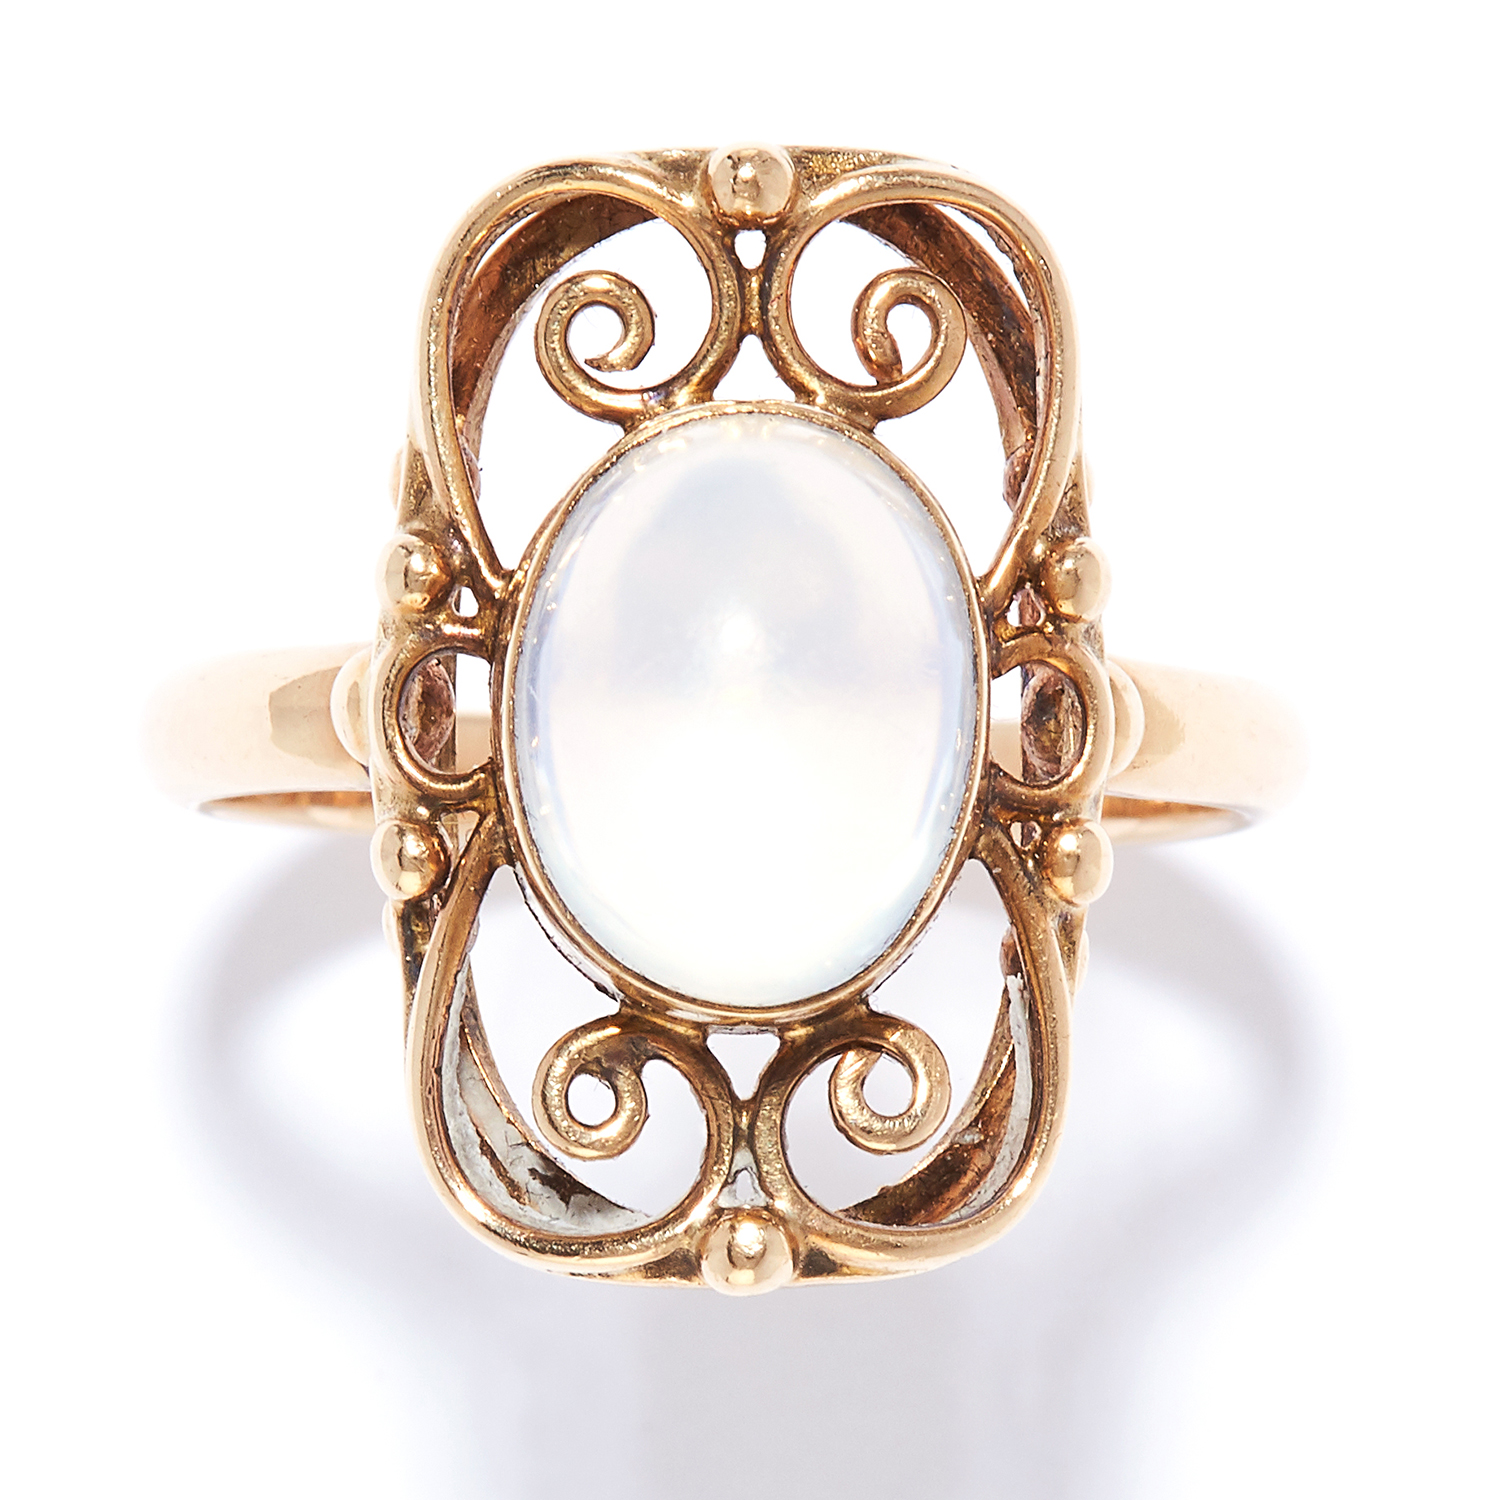 ANTIQUE MOONSTONE DRESS RING in yellow gold, set with a cabochon moonstone in open framework design,